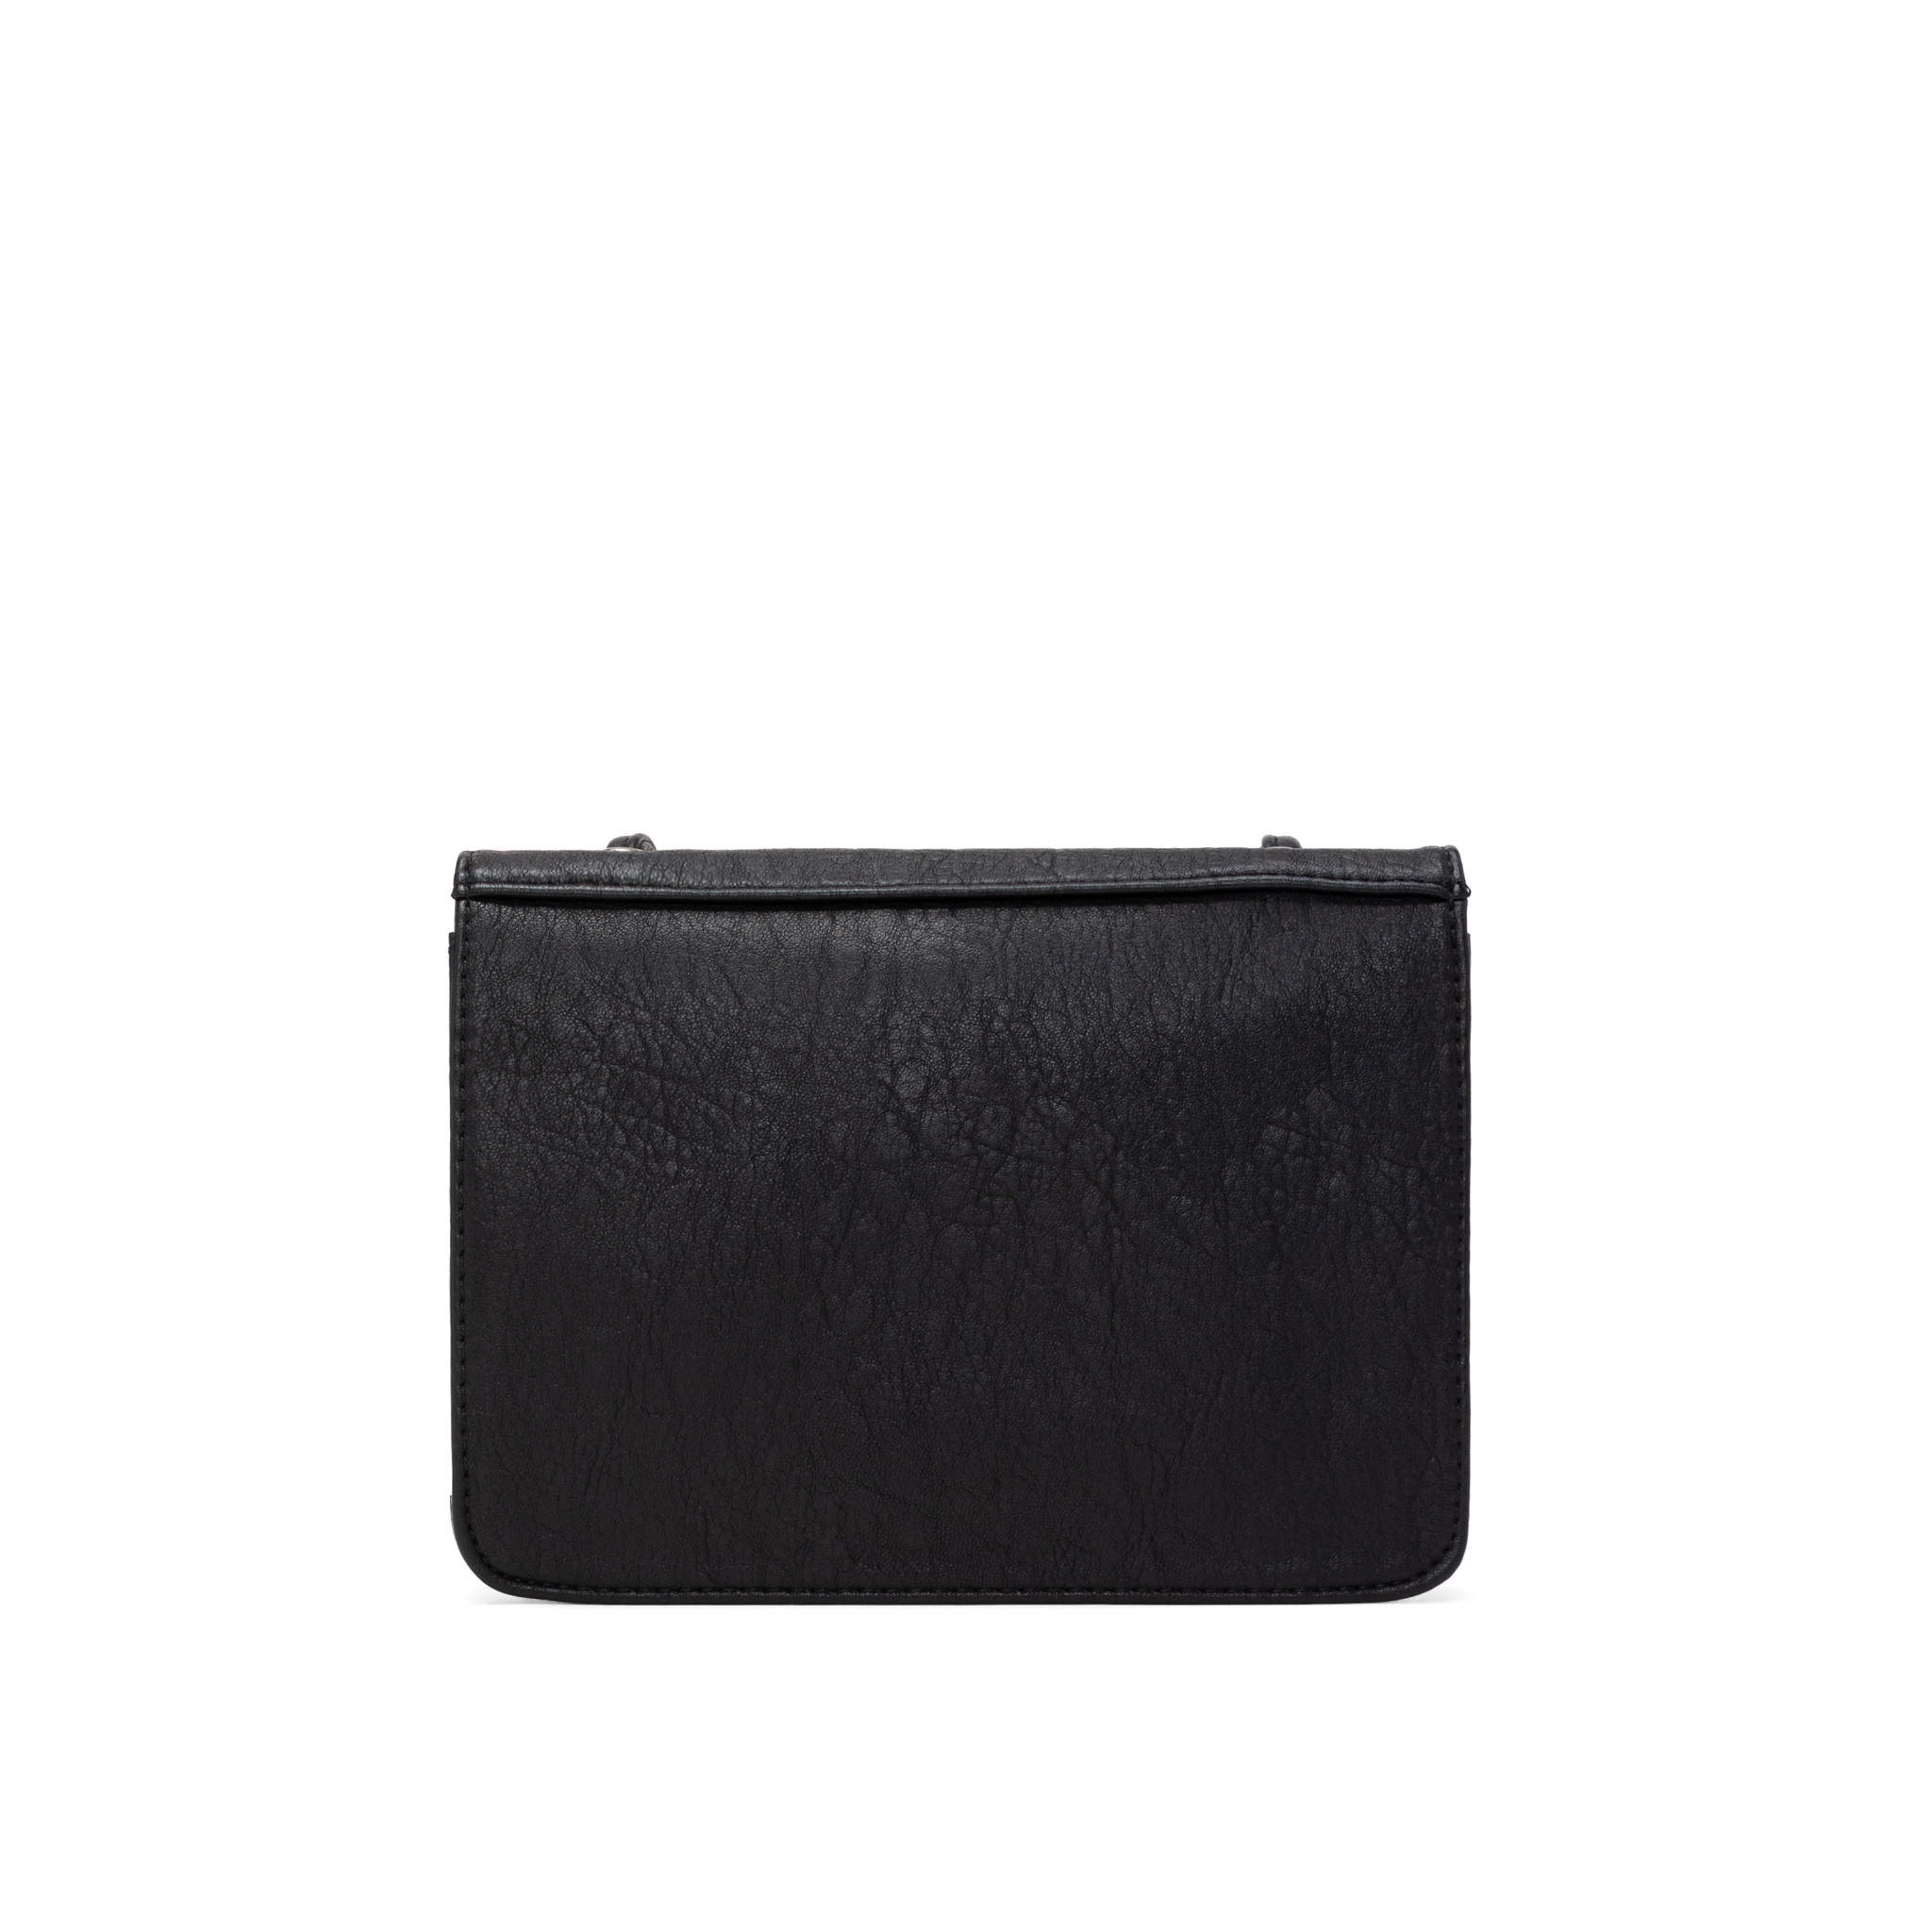 Colab Colab Faux Goat PU Crossbody Carryall (#6426) - Black